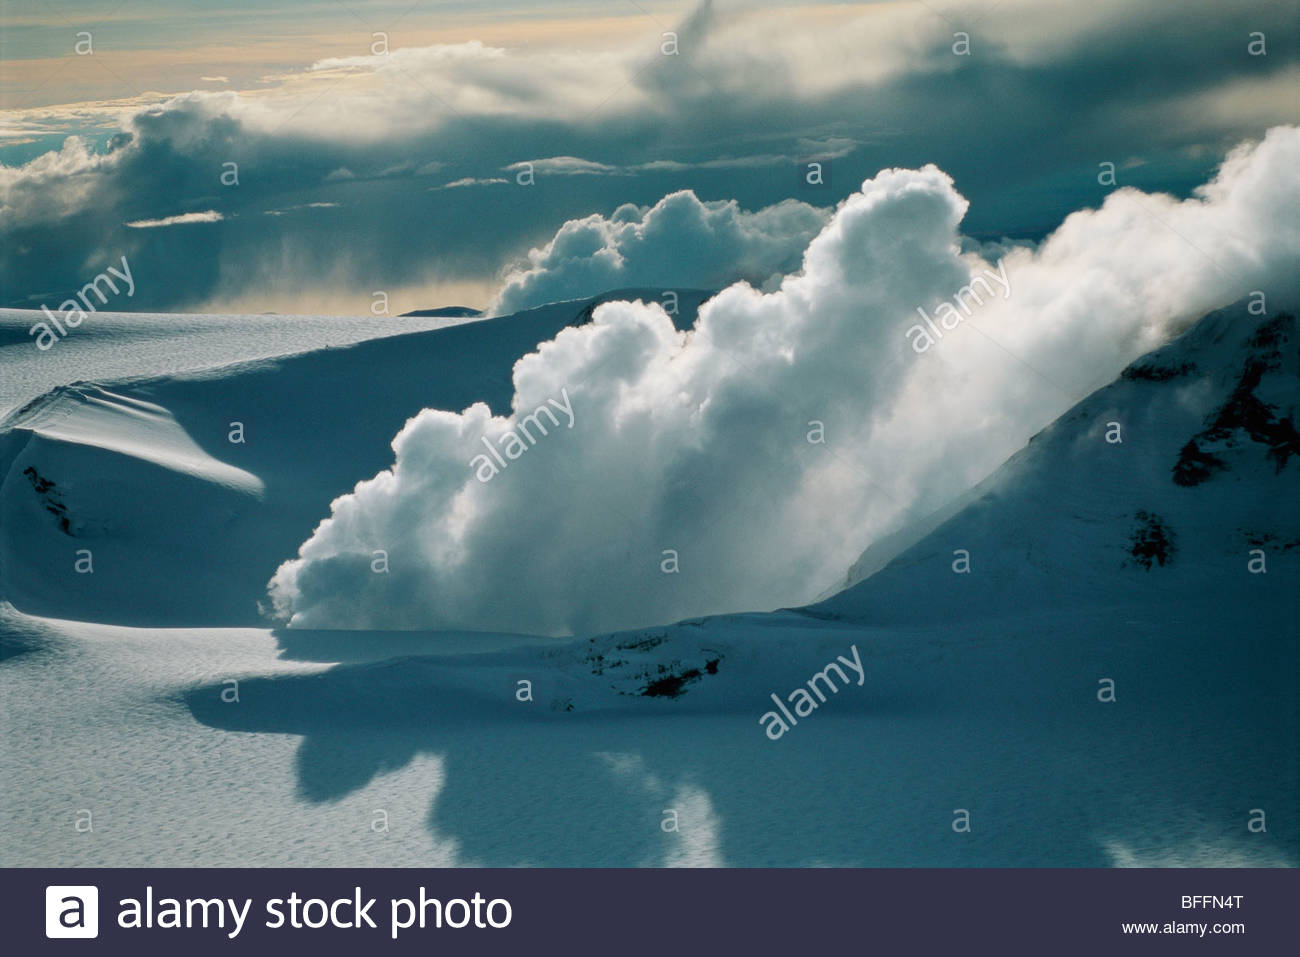 Volcanic steam in snowfield on summit of Mt. Wrangell (aerial), Wrangell St. Elias National Park, Alaska - Stock Image